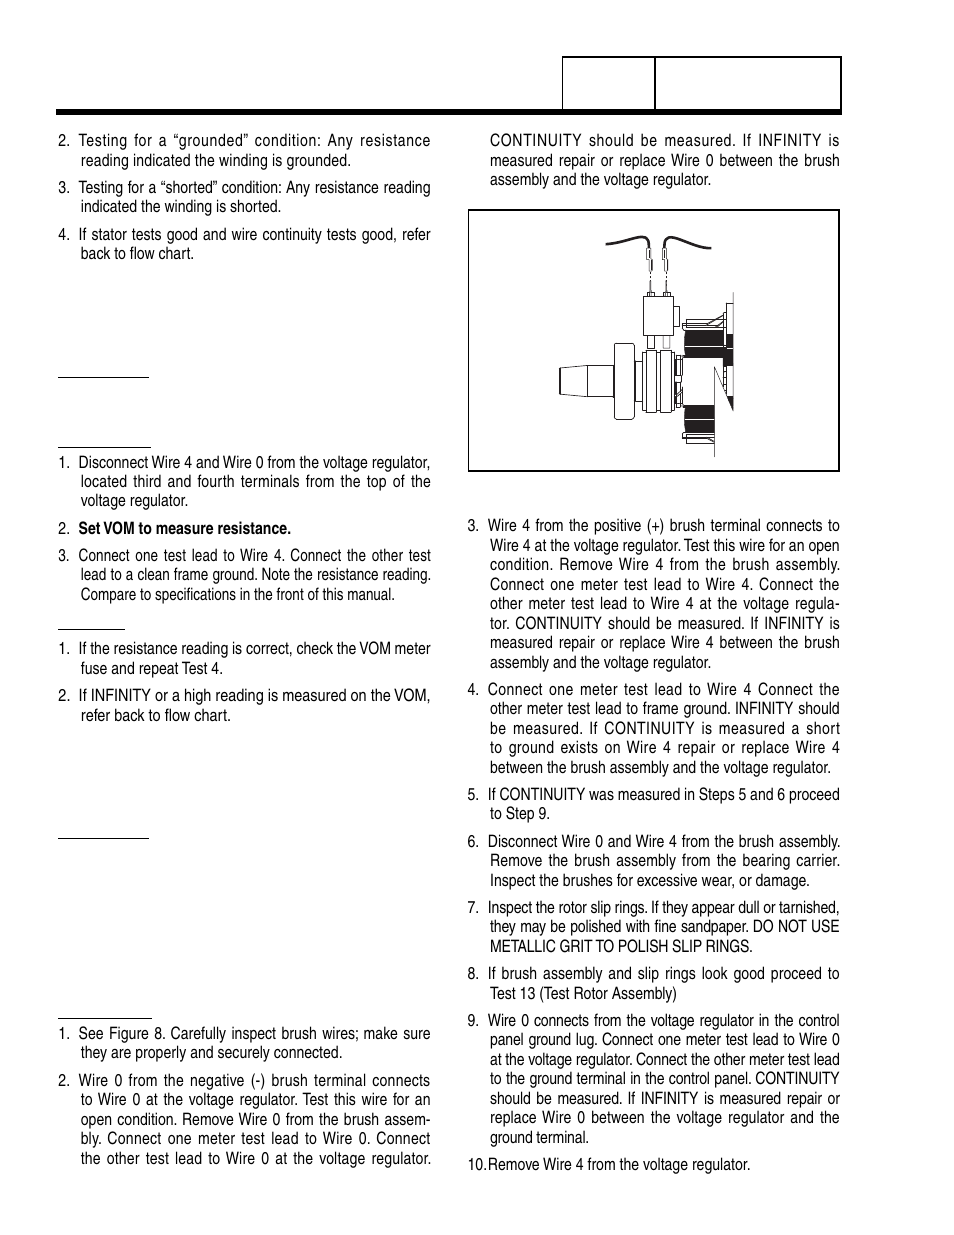 Test 12 Check Brushes And Slip Rings12 20 Kw Generac Power Generator Wiring Diagram Systems 8 Lp User Manual Page 50 192